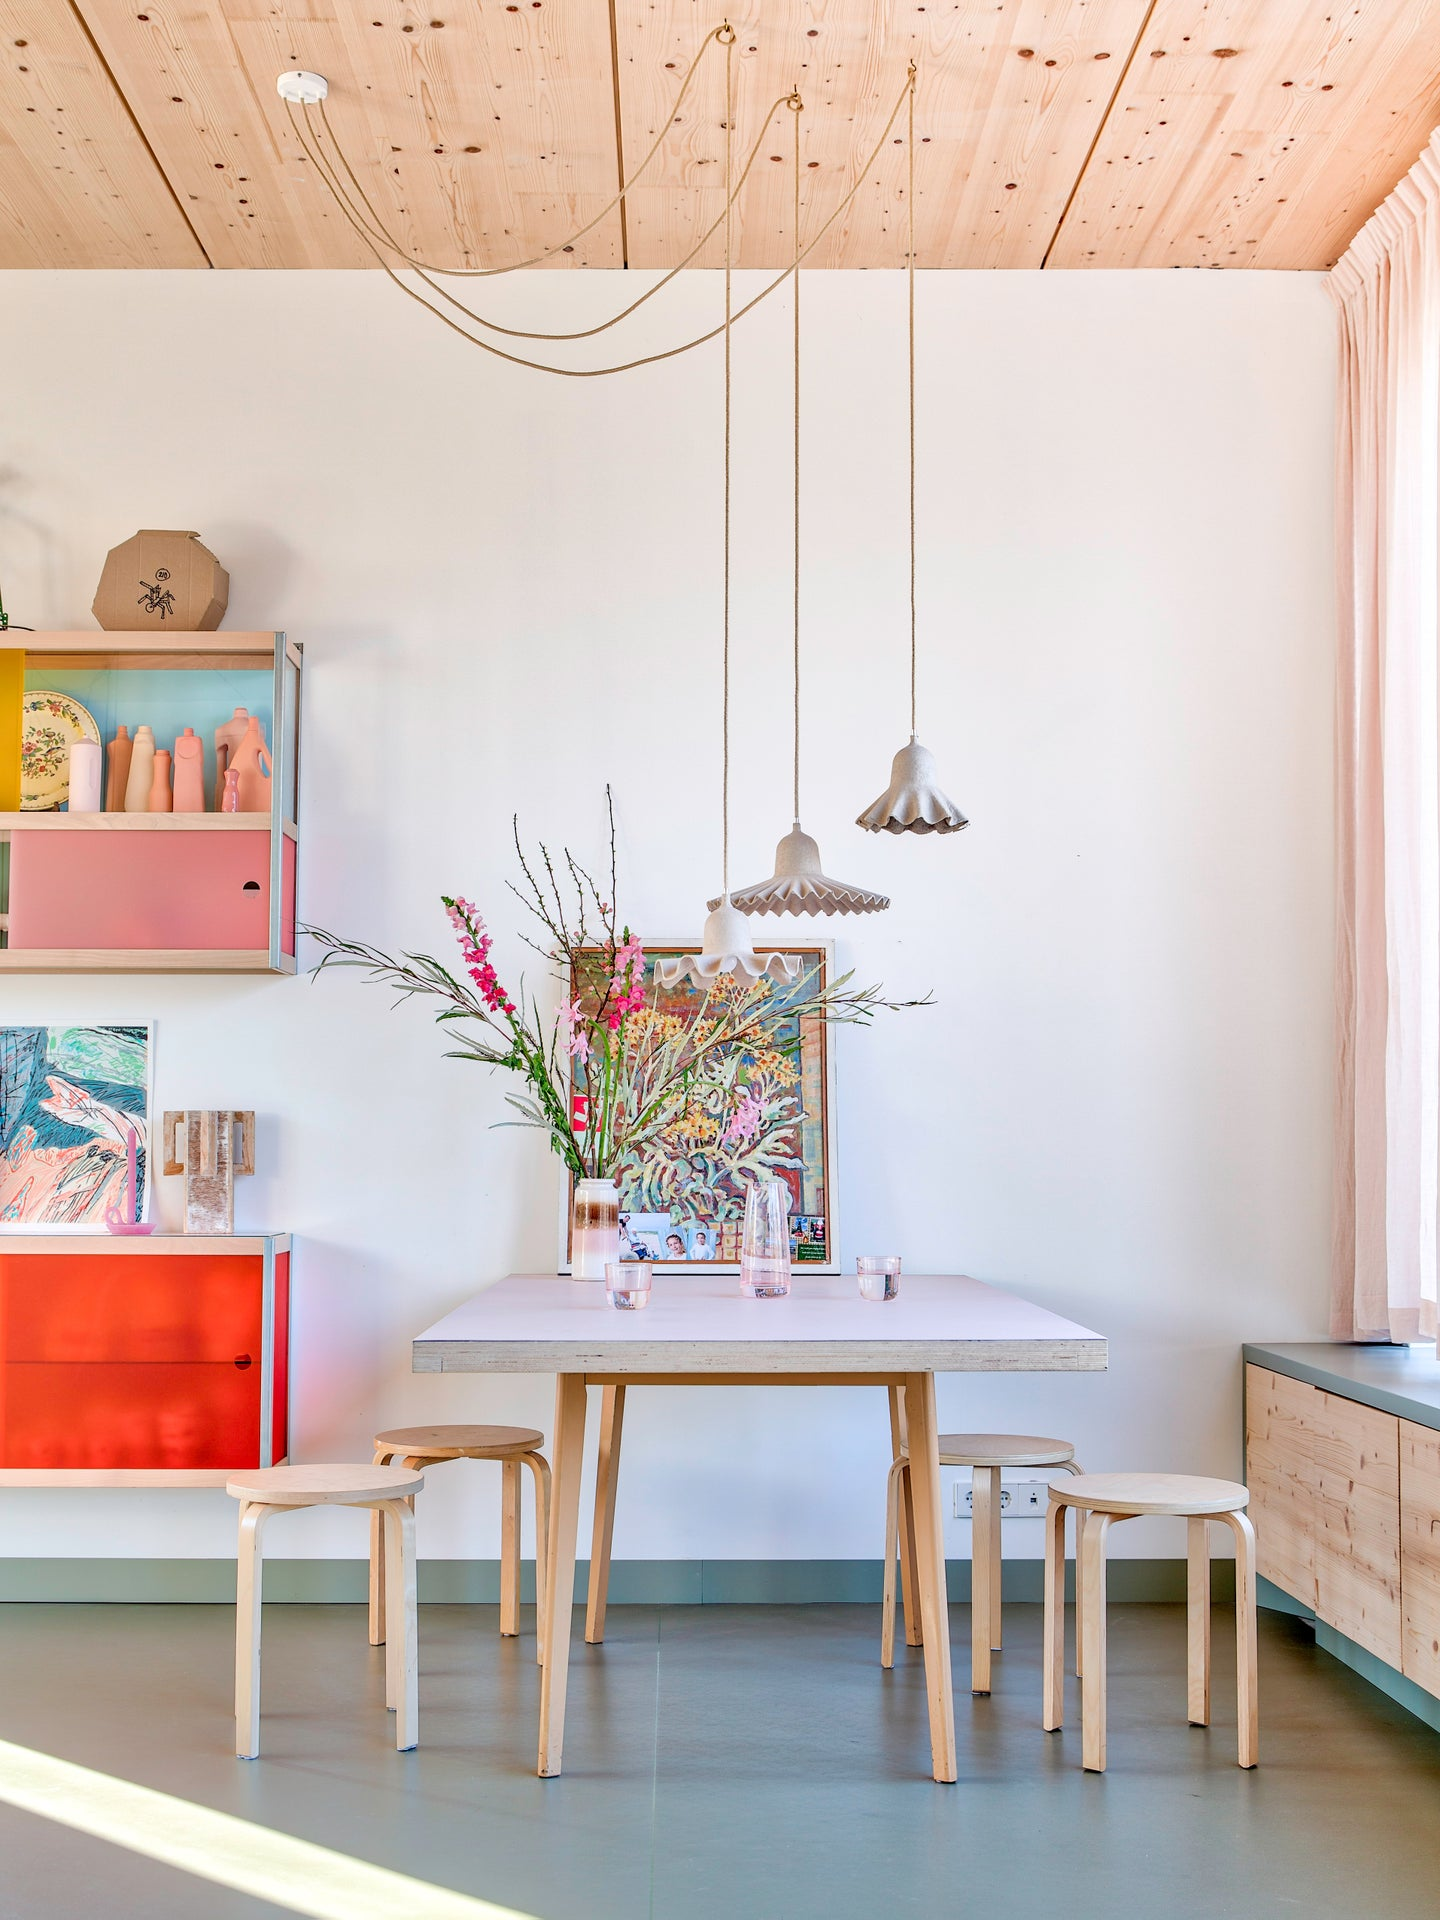 Kitchen with white walls, light wood table and chairs, and colorful wall cabinets